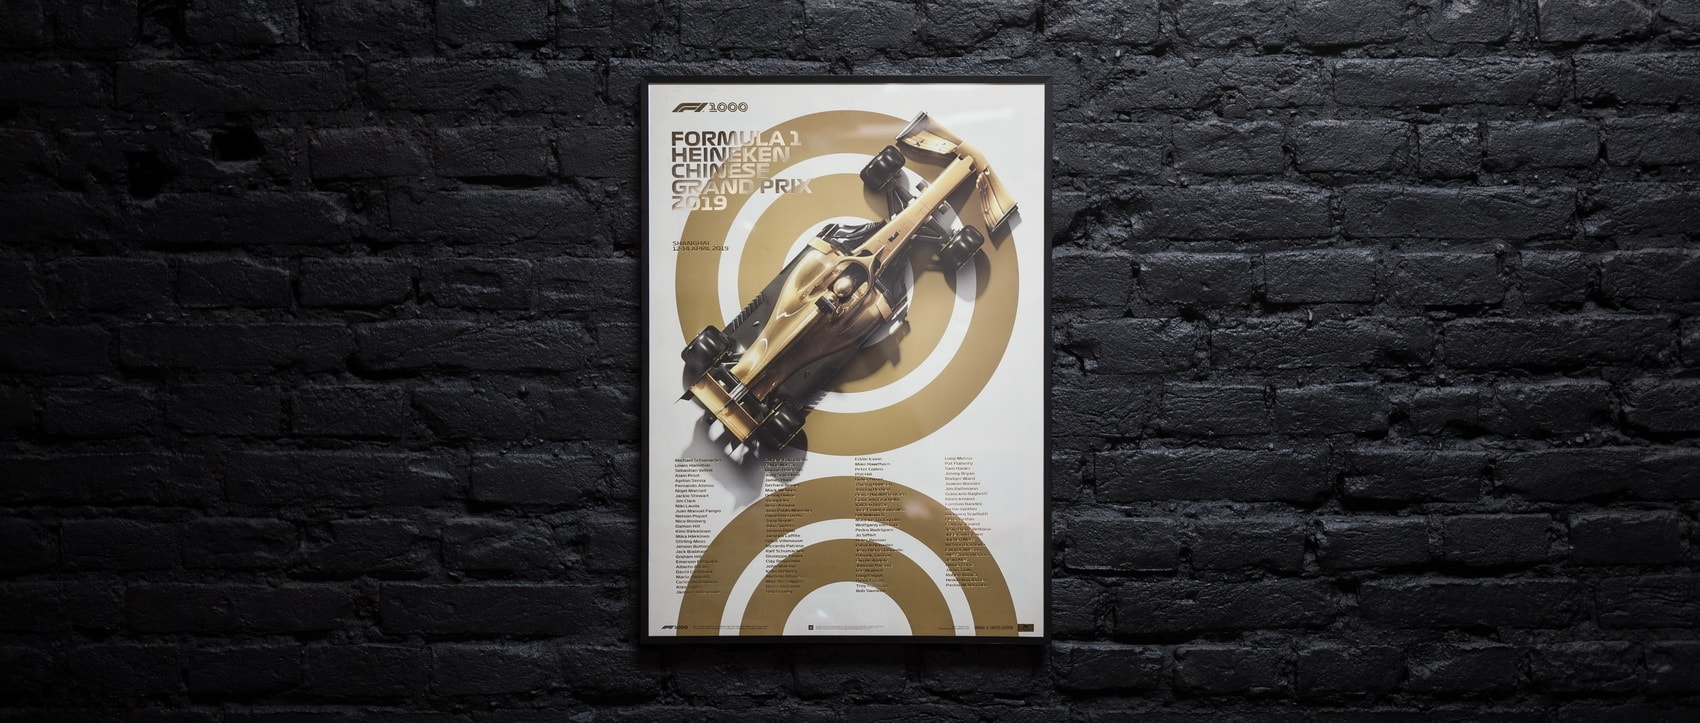 Automobilist launches commemorative Formula 1 1000th Grand Prix posters